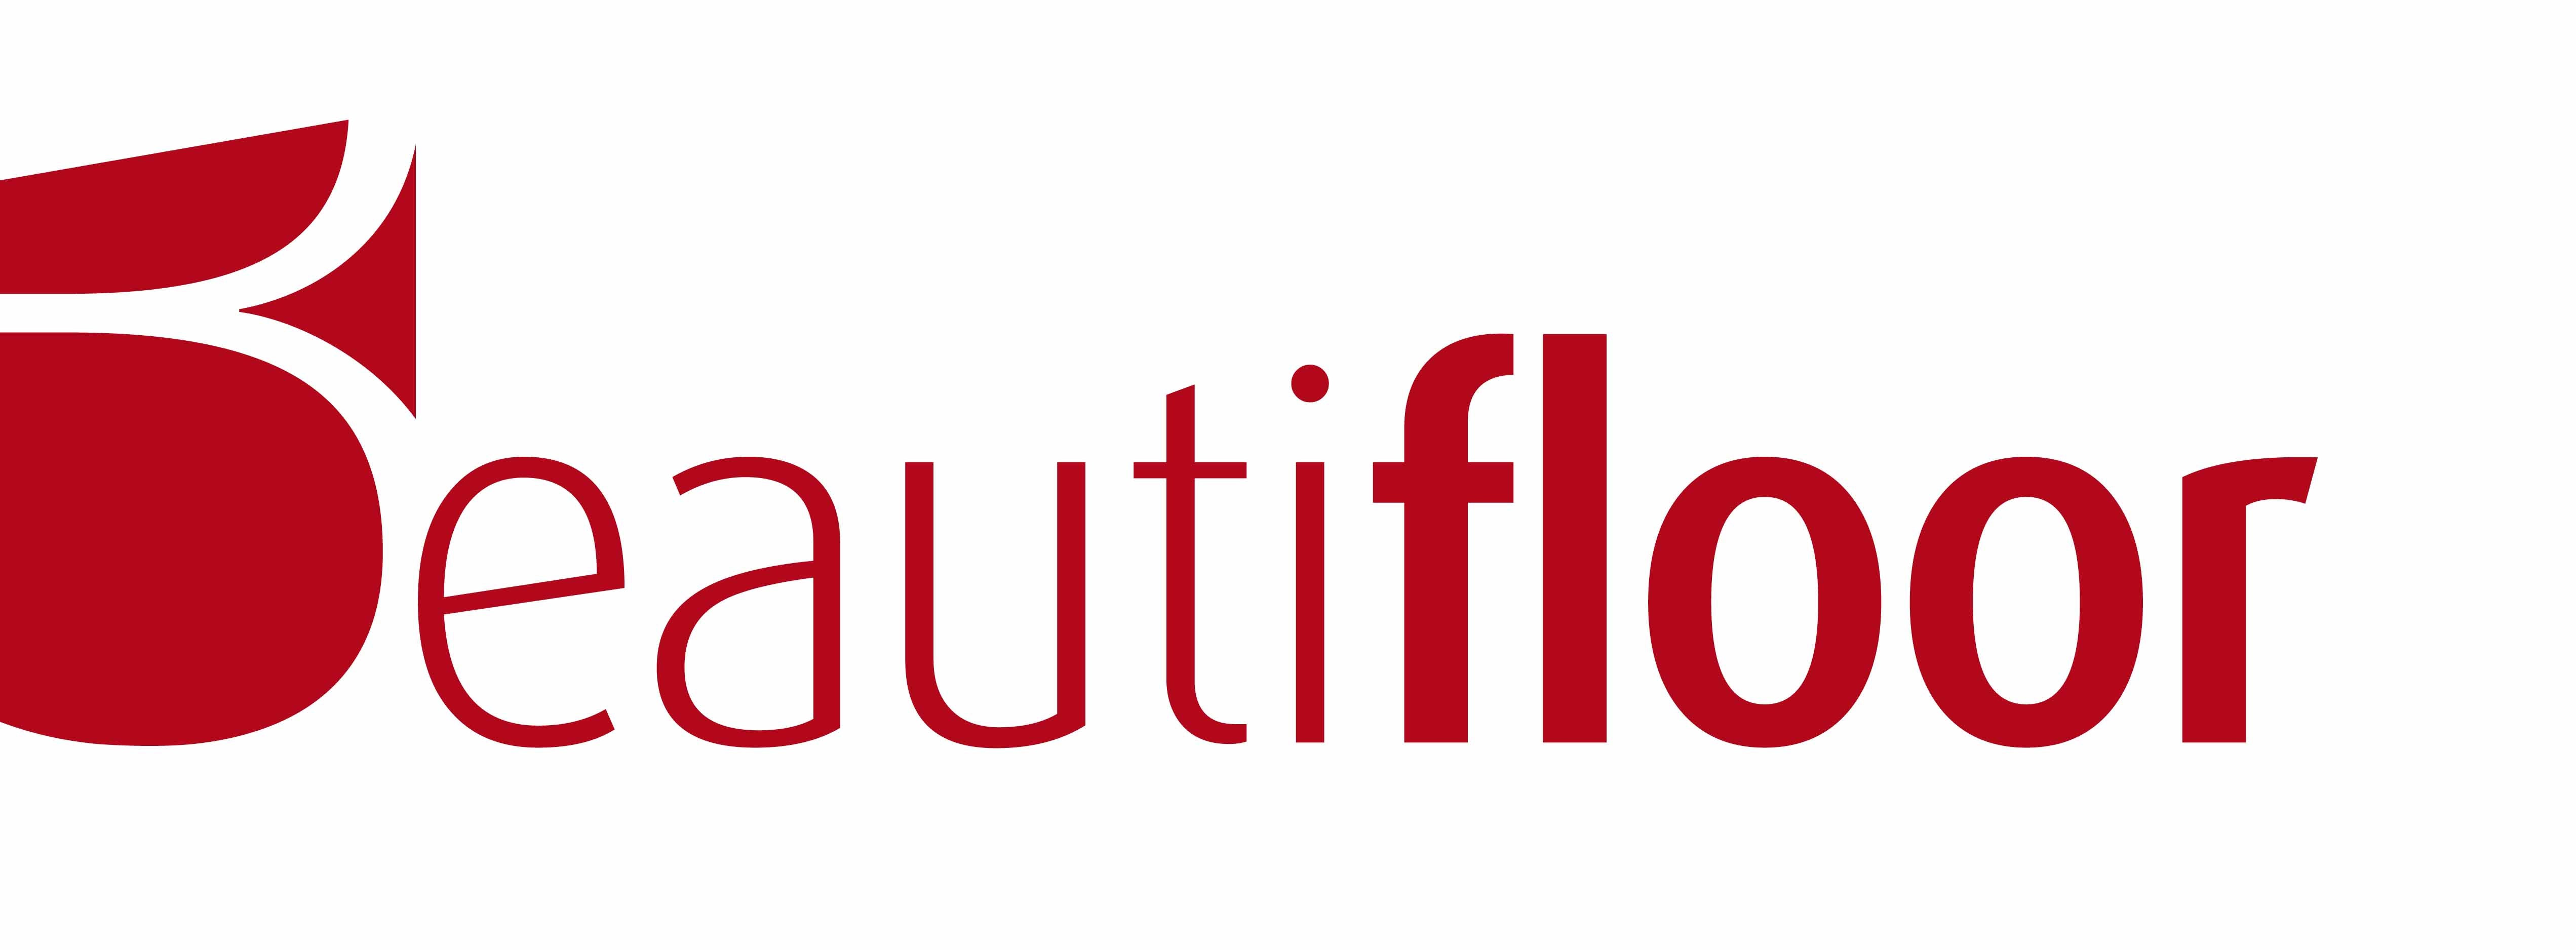 beautifloor logo